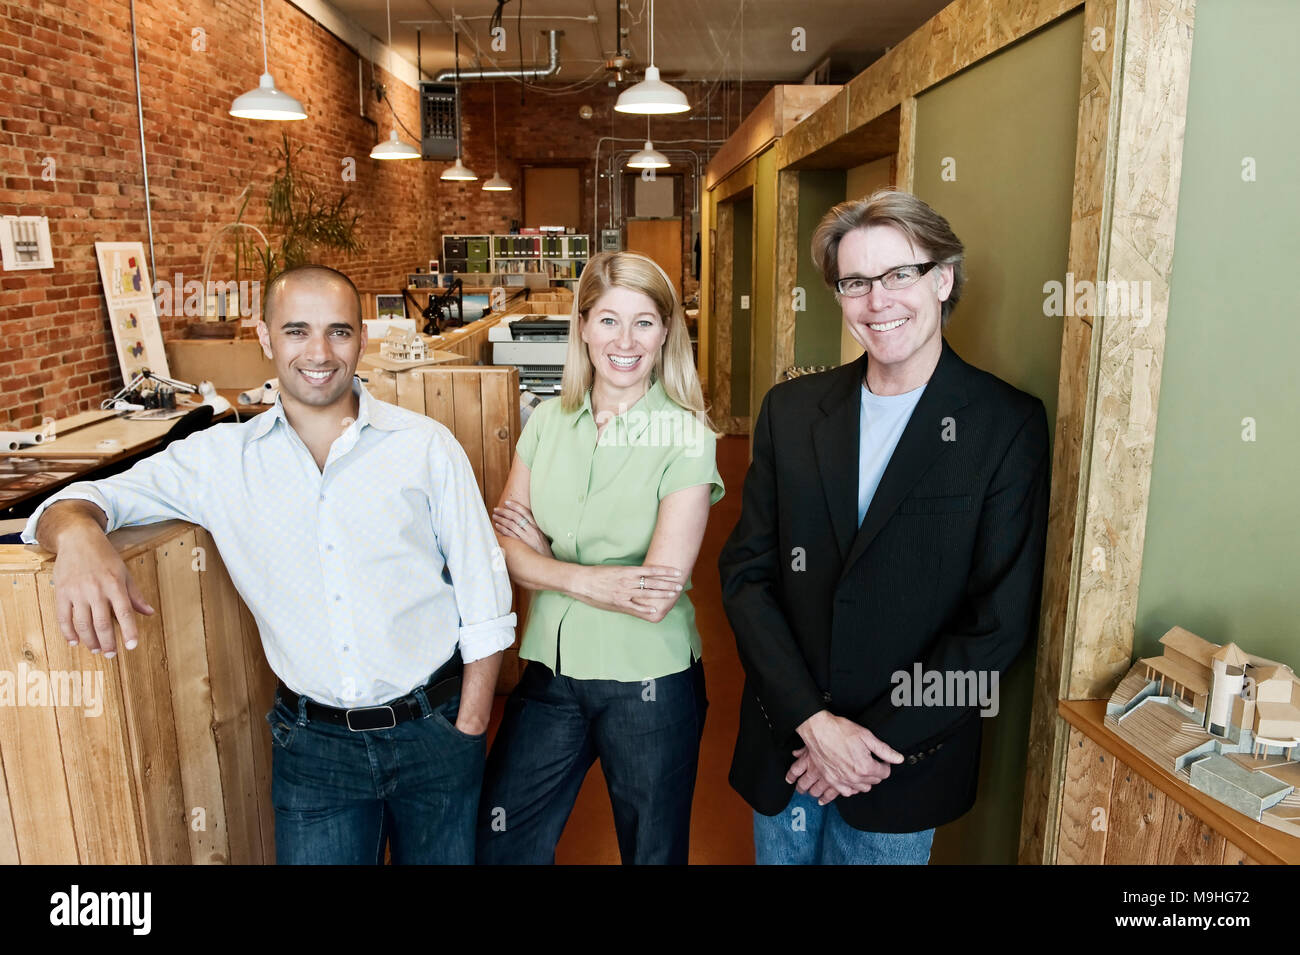 Portrait of a multi-ethnic team of three architects in a small office. - Stock Image